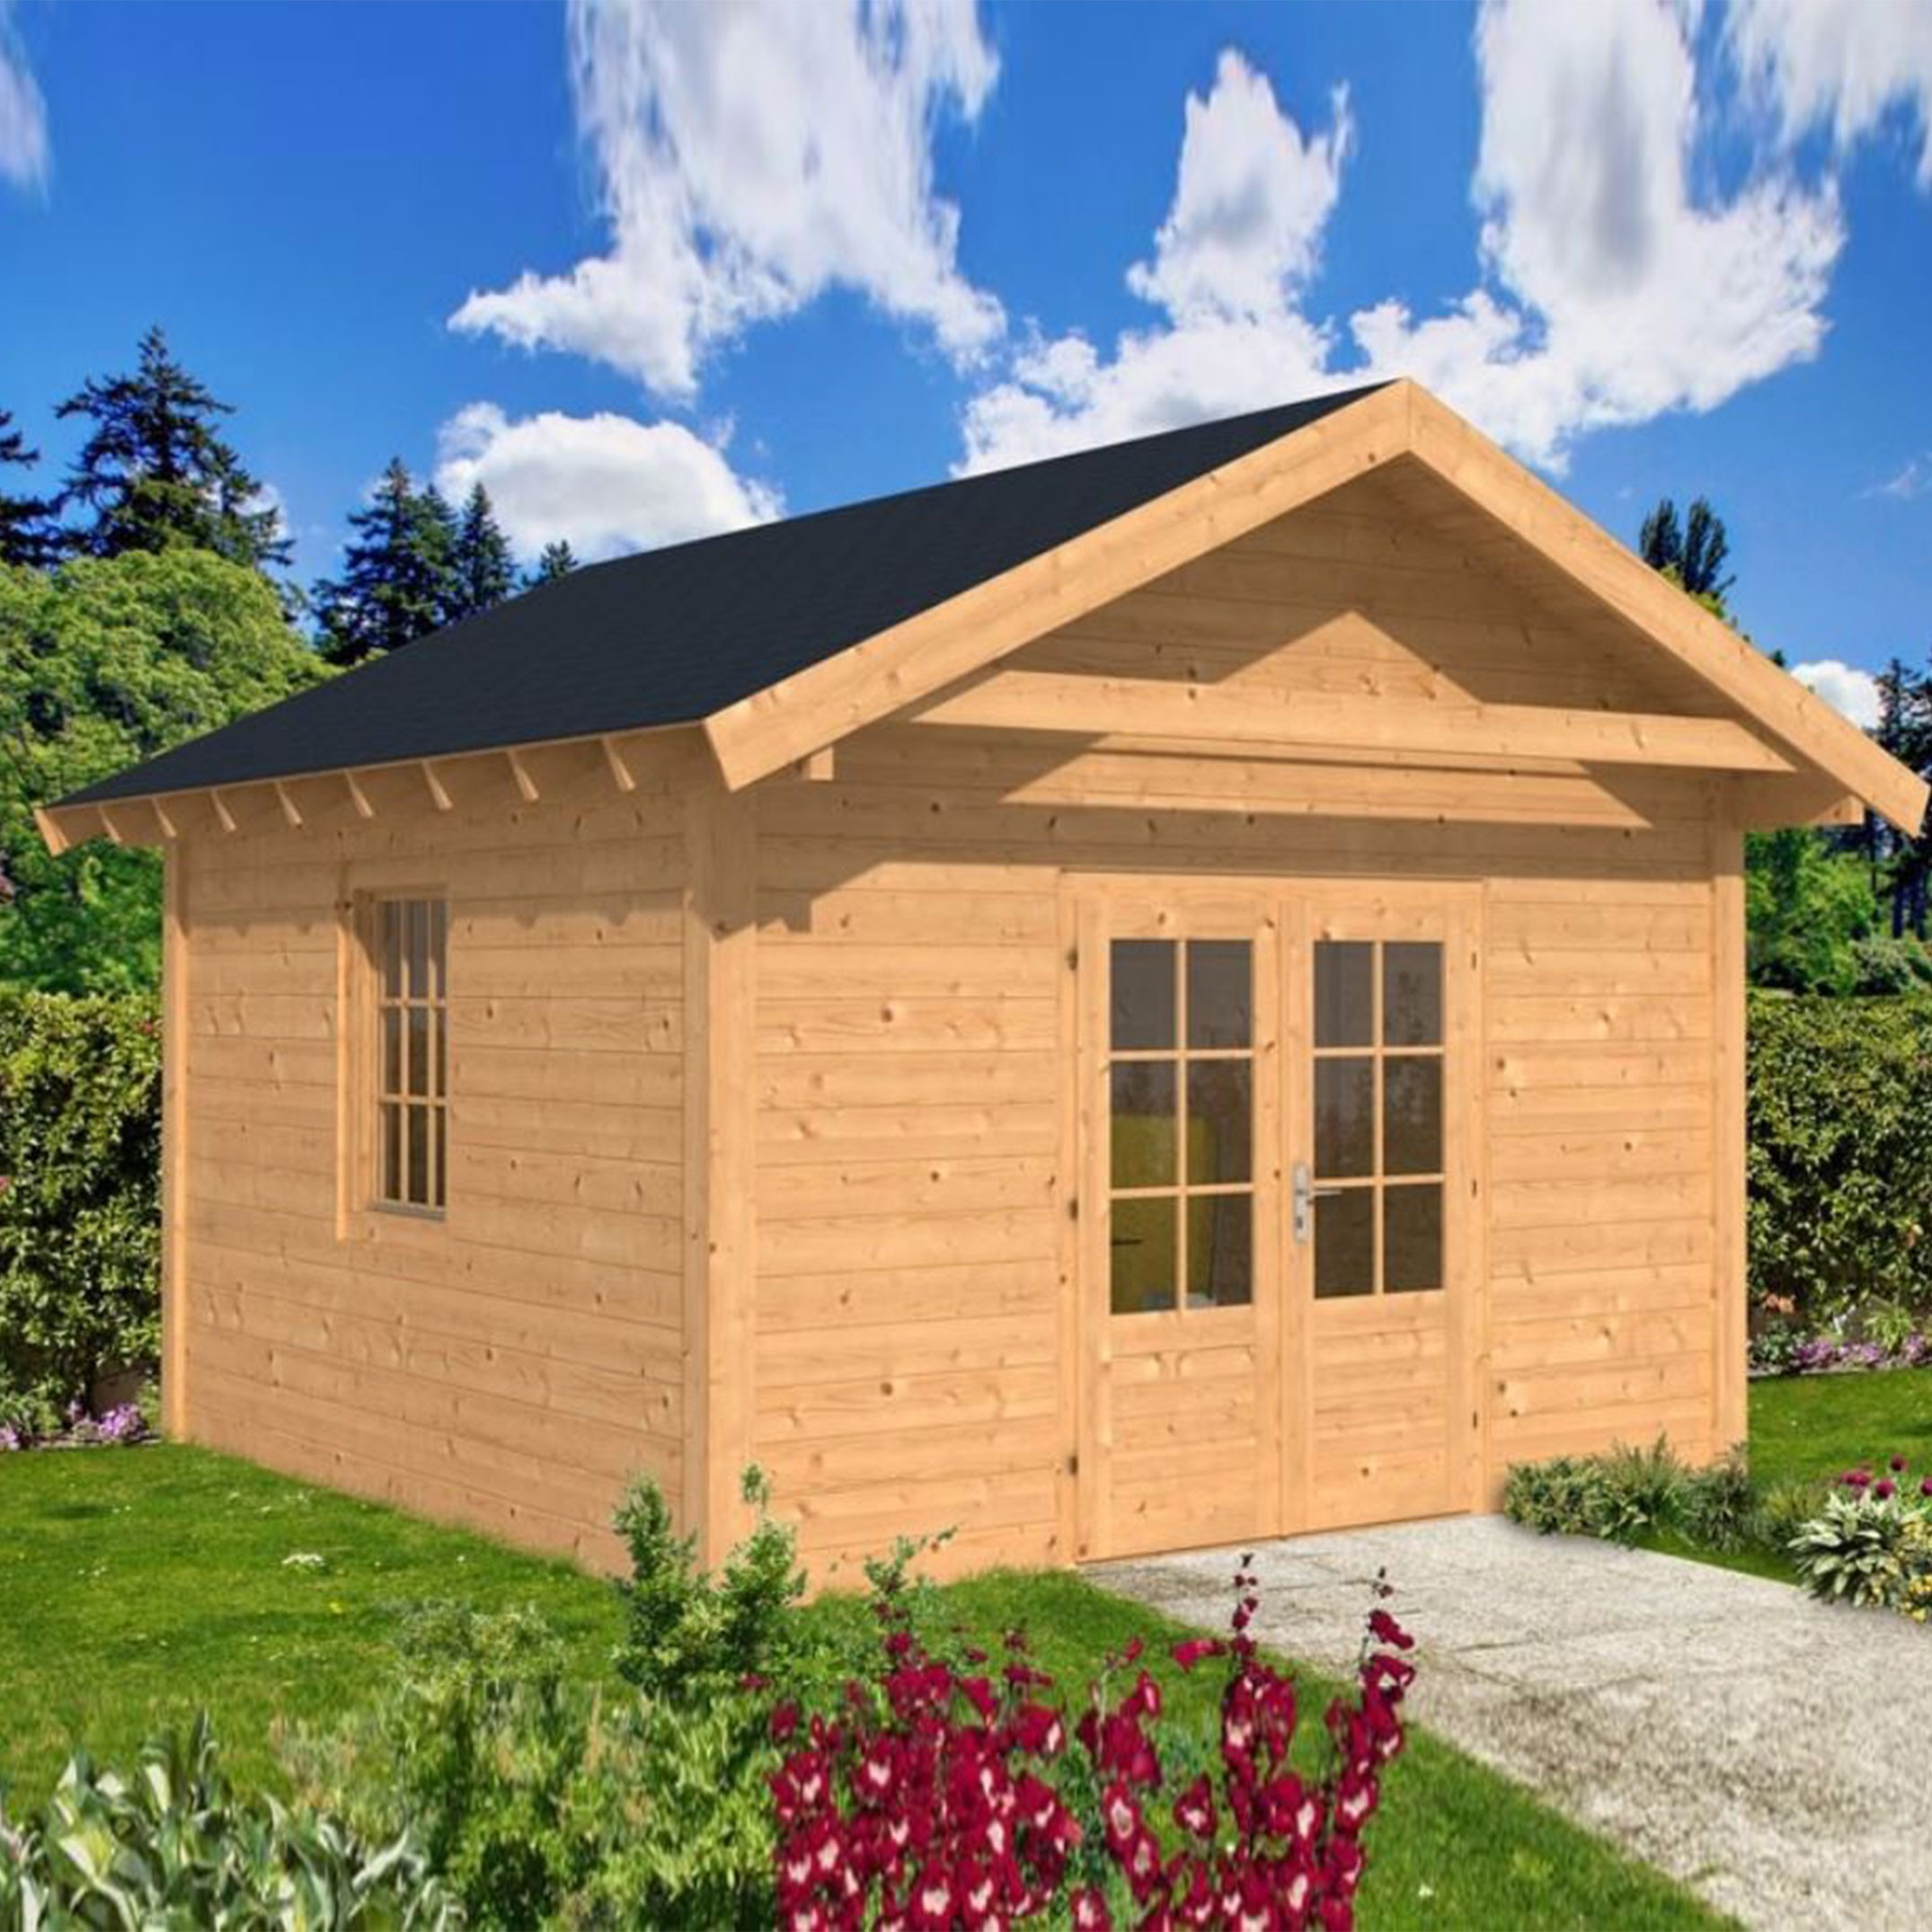 Garden shed Tubbergen untreated cladding - Tuindeco